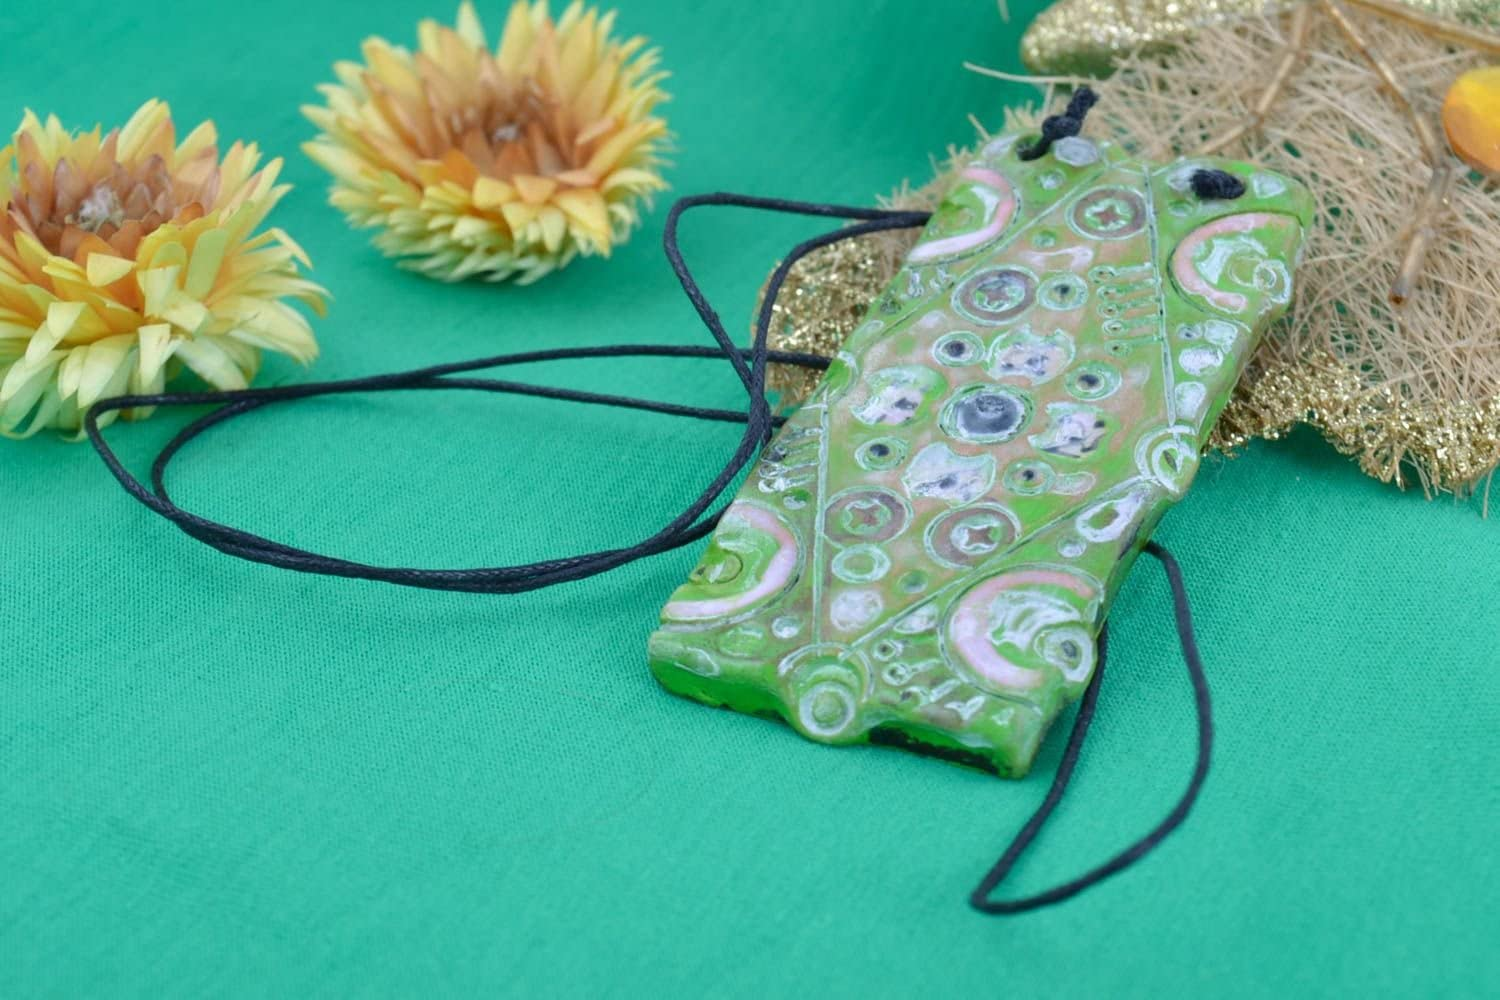 Handmade Unusual Clay Pendant Painted with Acrylics Stylish Designer Accessory